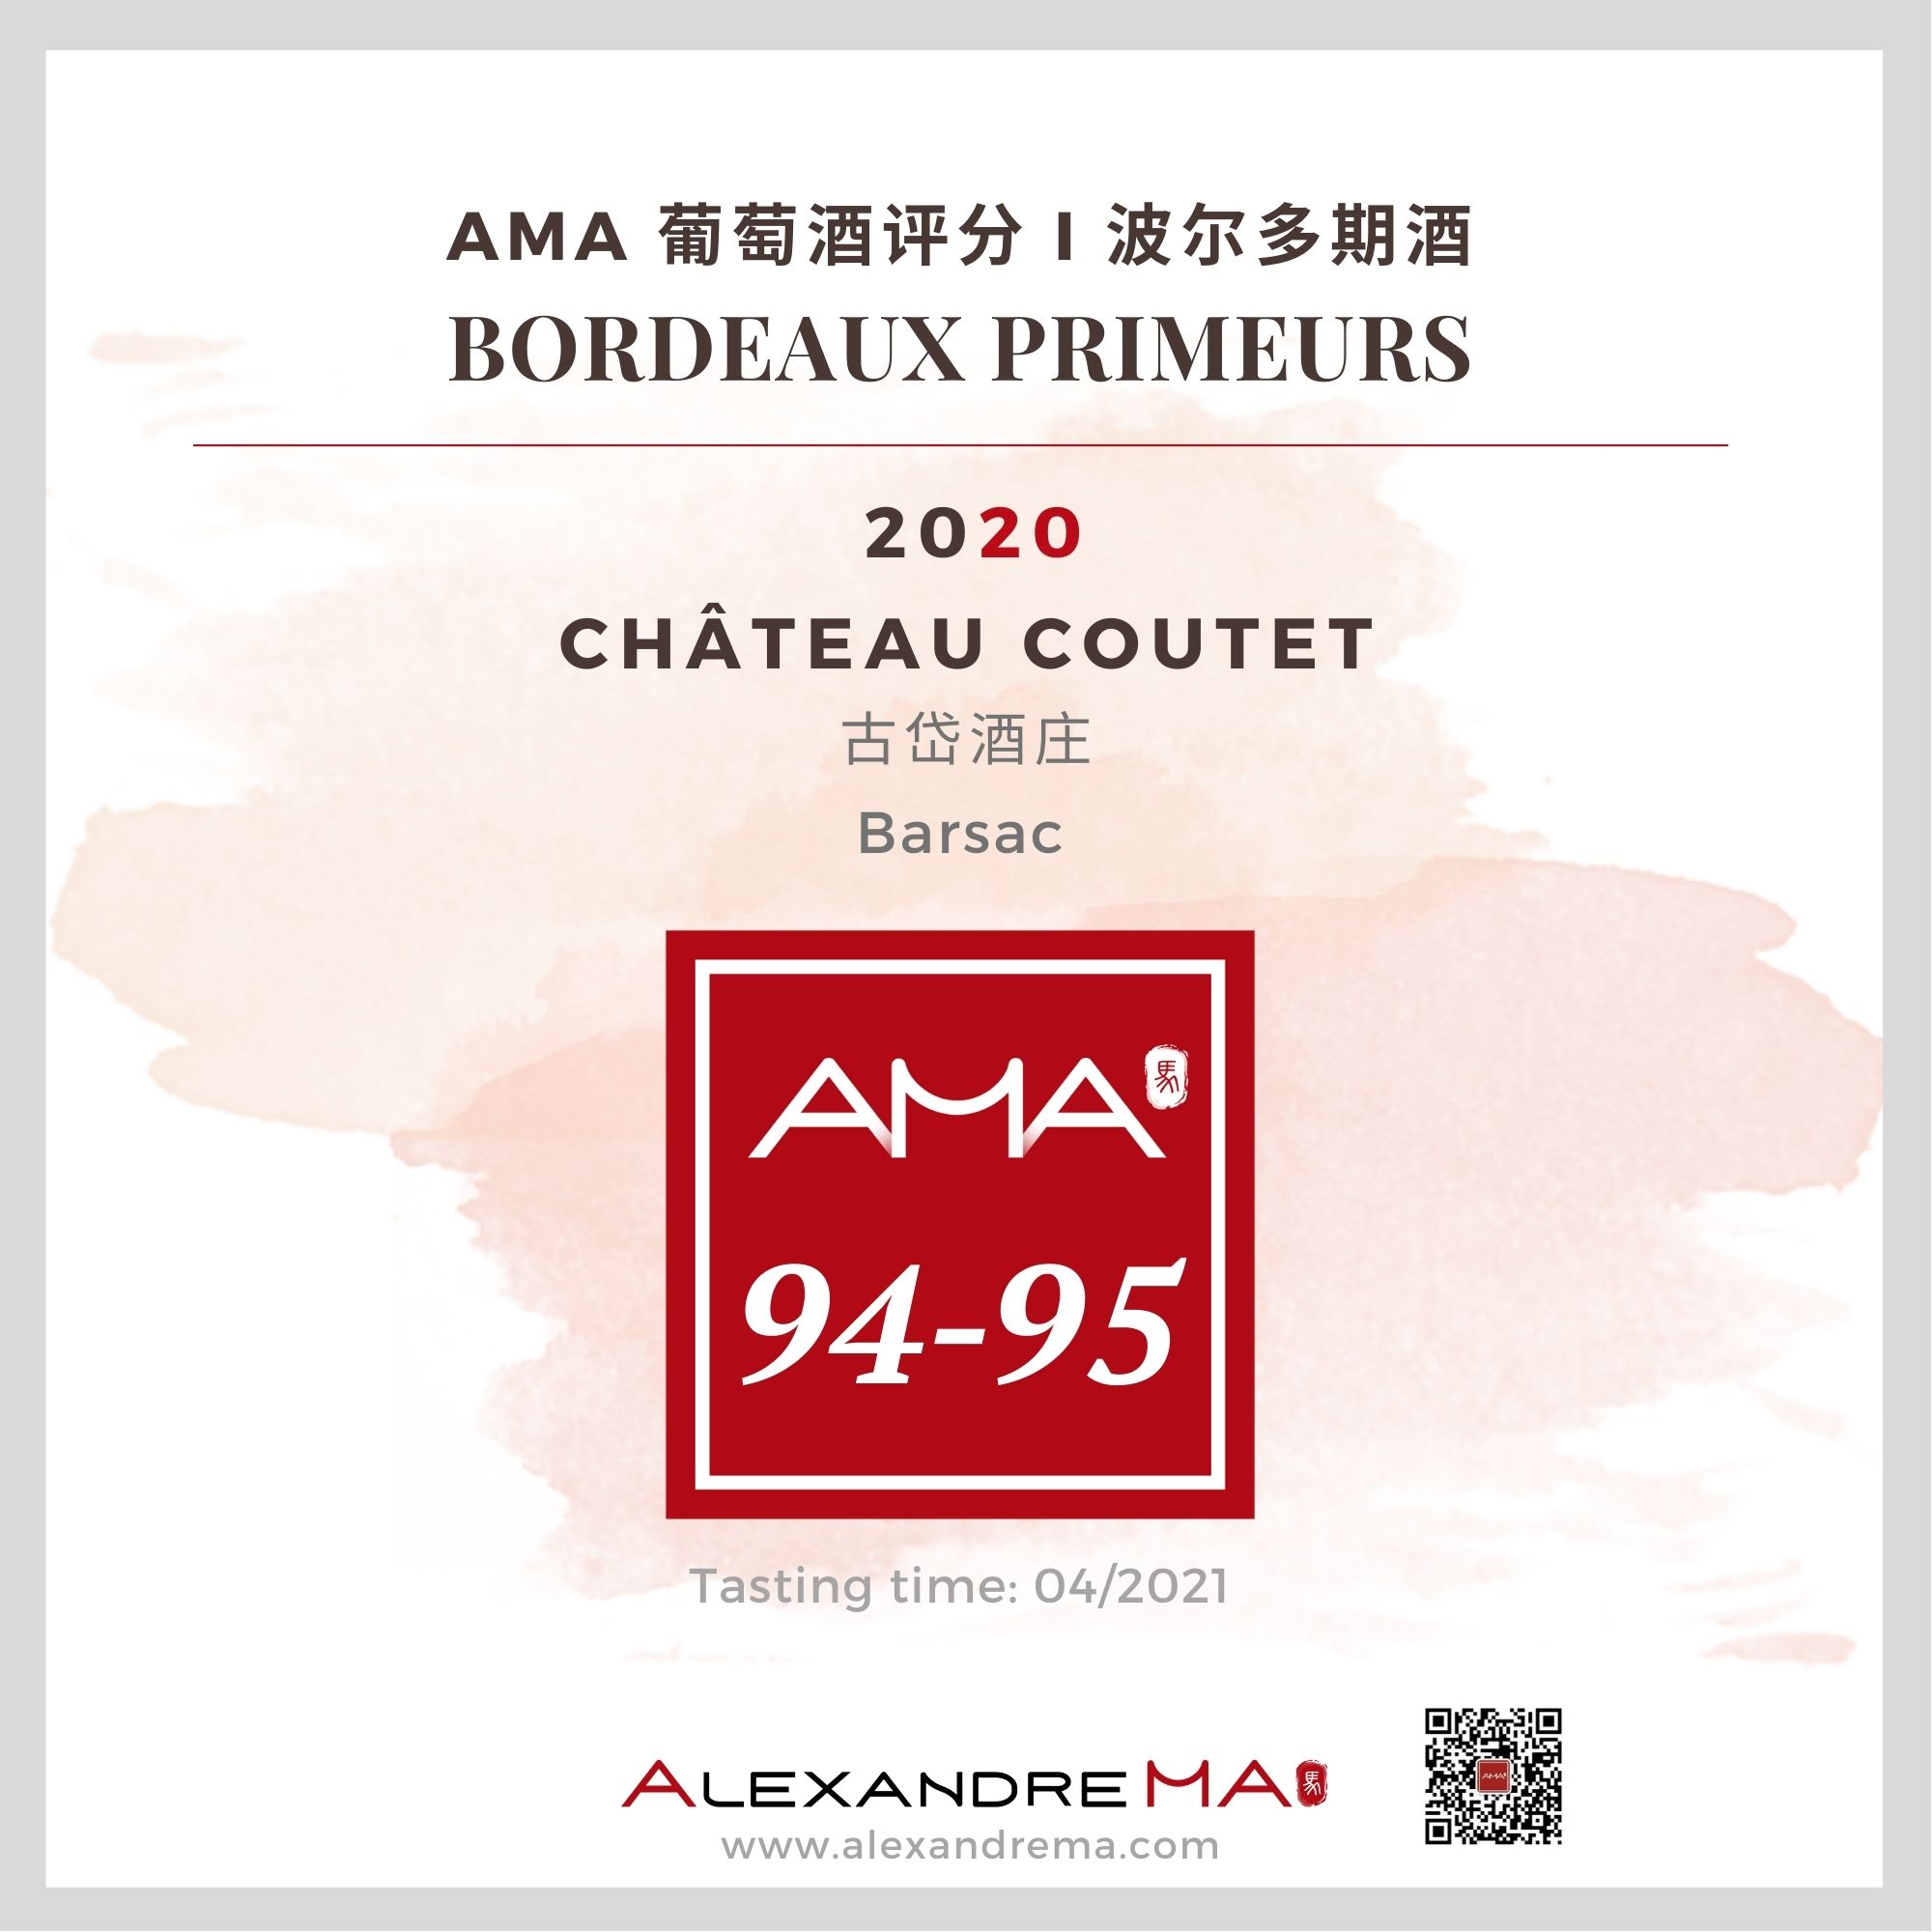 Château Coutet 2020 古岱酒庄 - Alexandre Ma